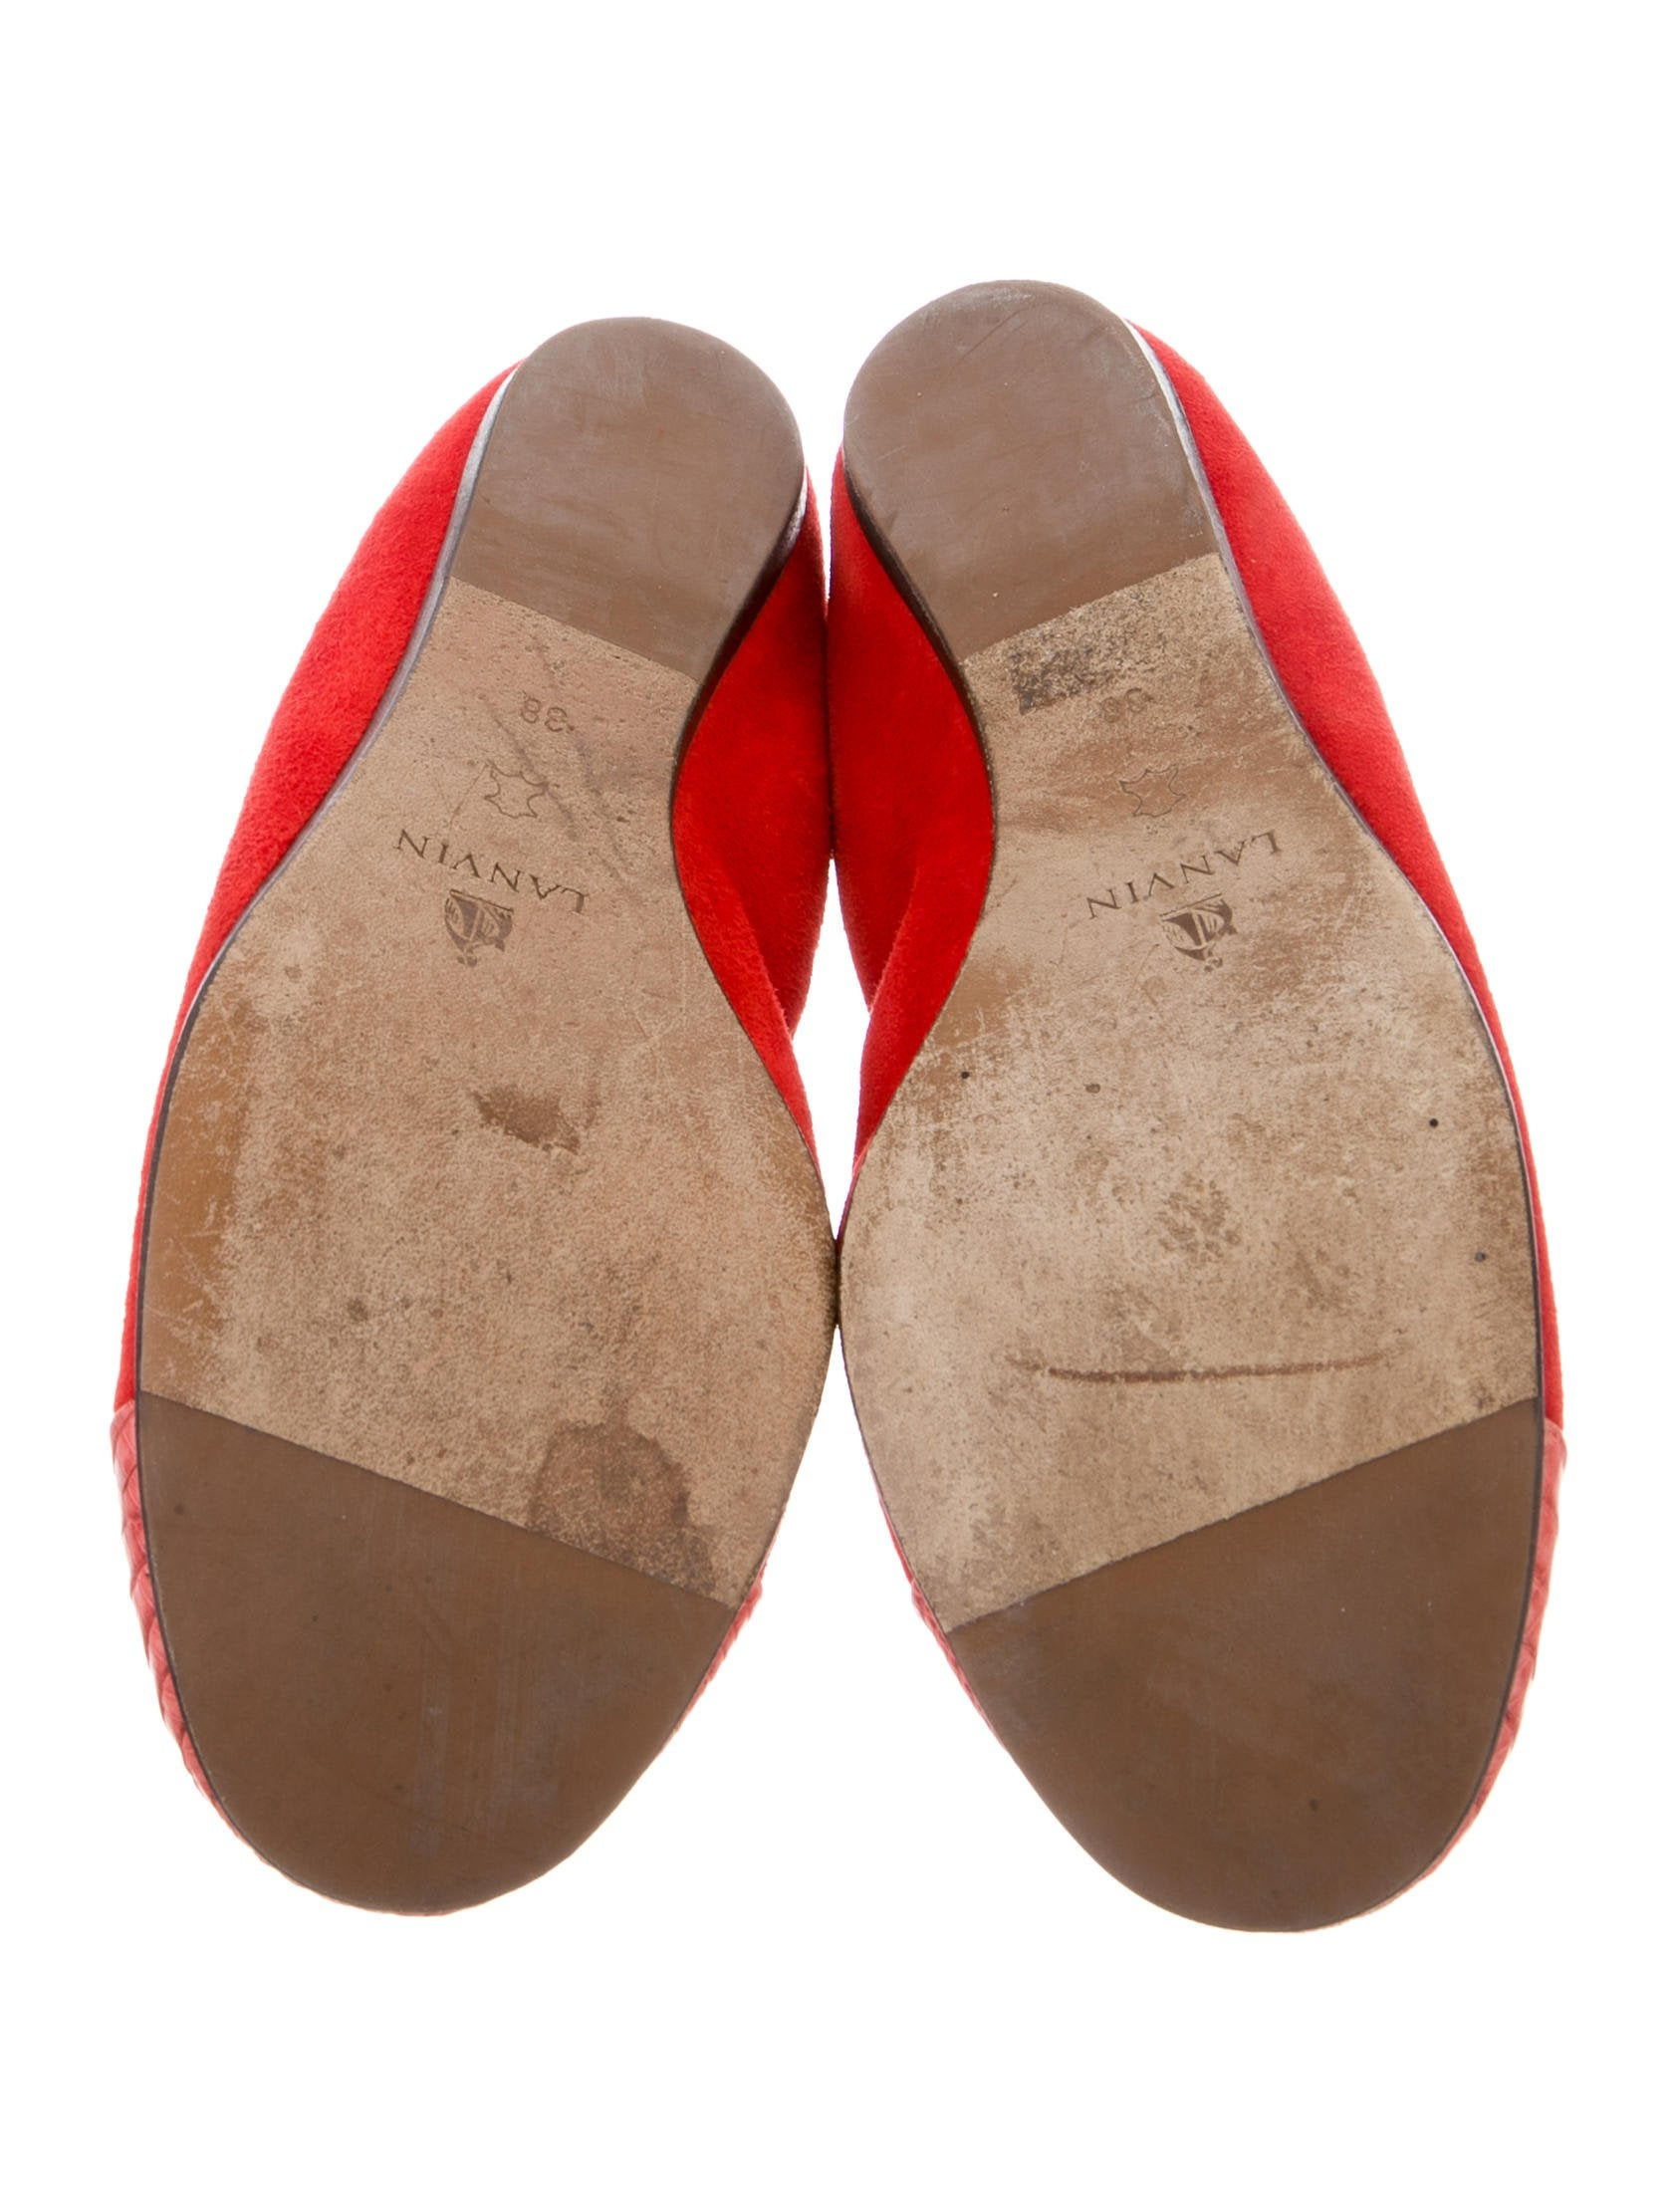 Free shipping on women's ballet flats at sofltappreciate.tk Shop ballet flats for women from the best brands including Tory Burch, Sam Edelman, Valentino and more. Totally free shipping & returns.